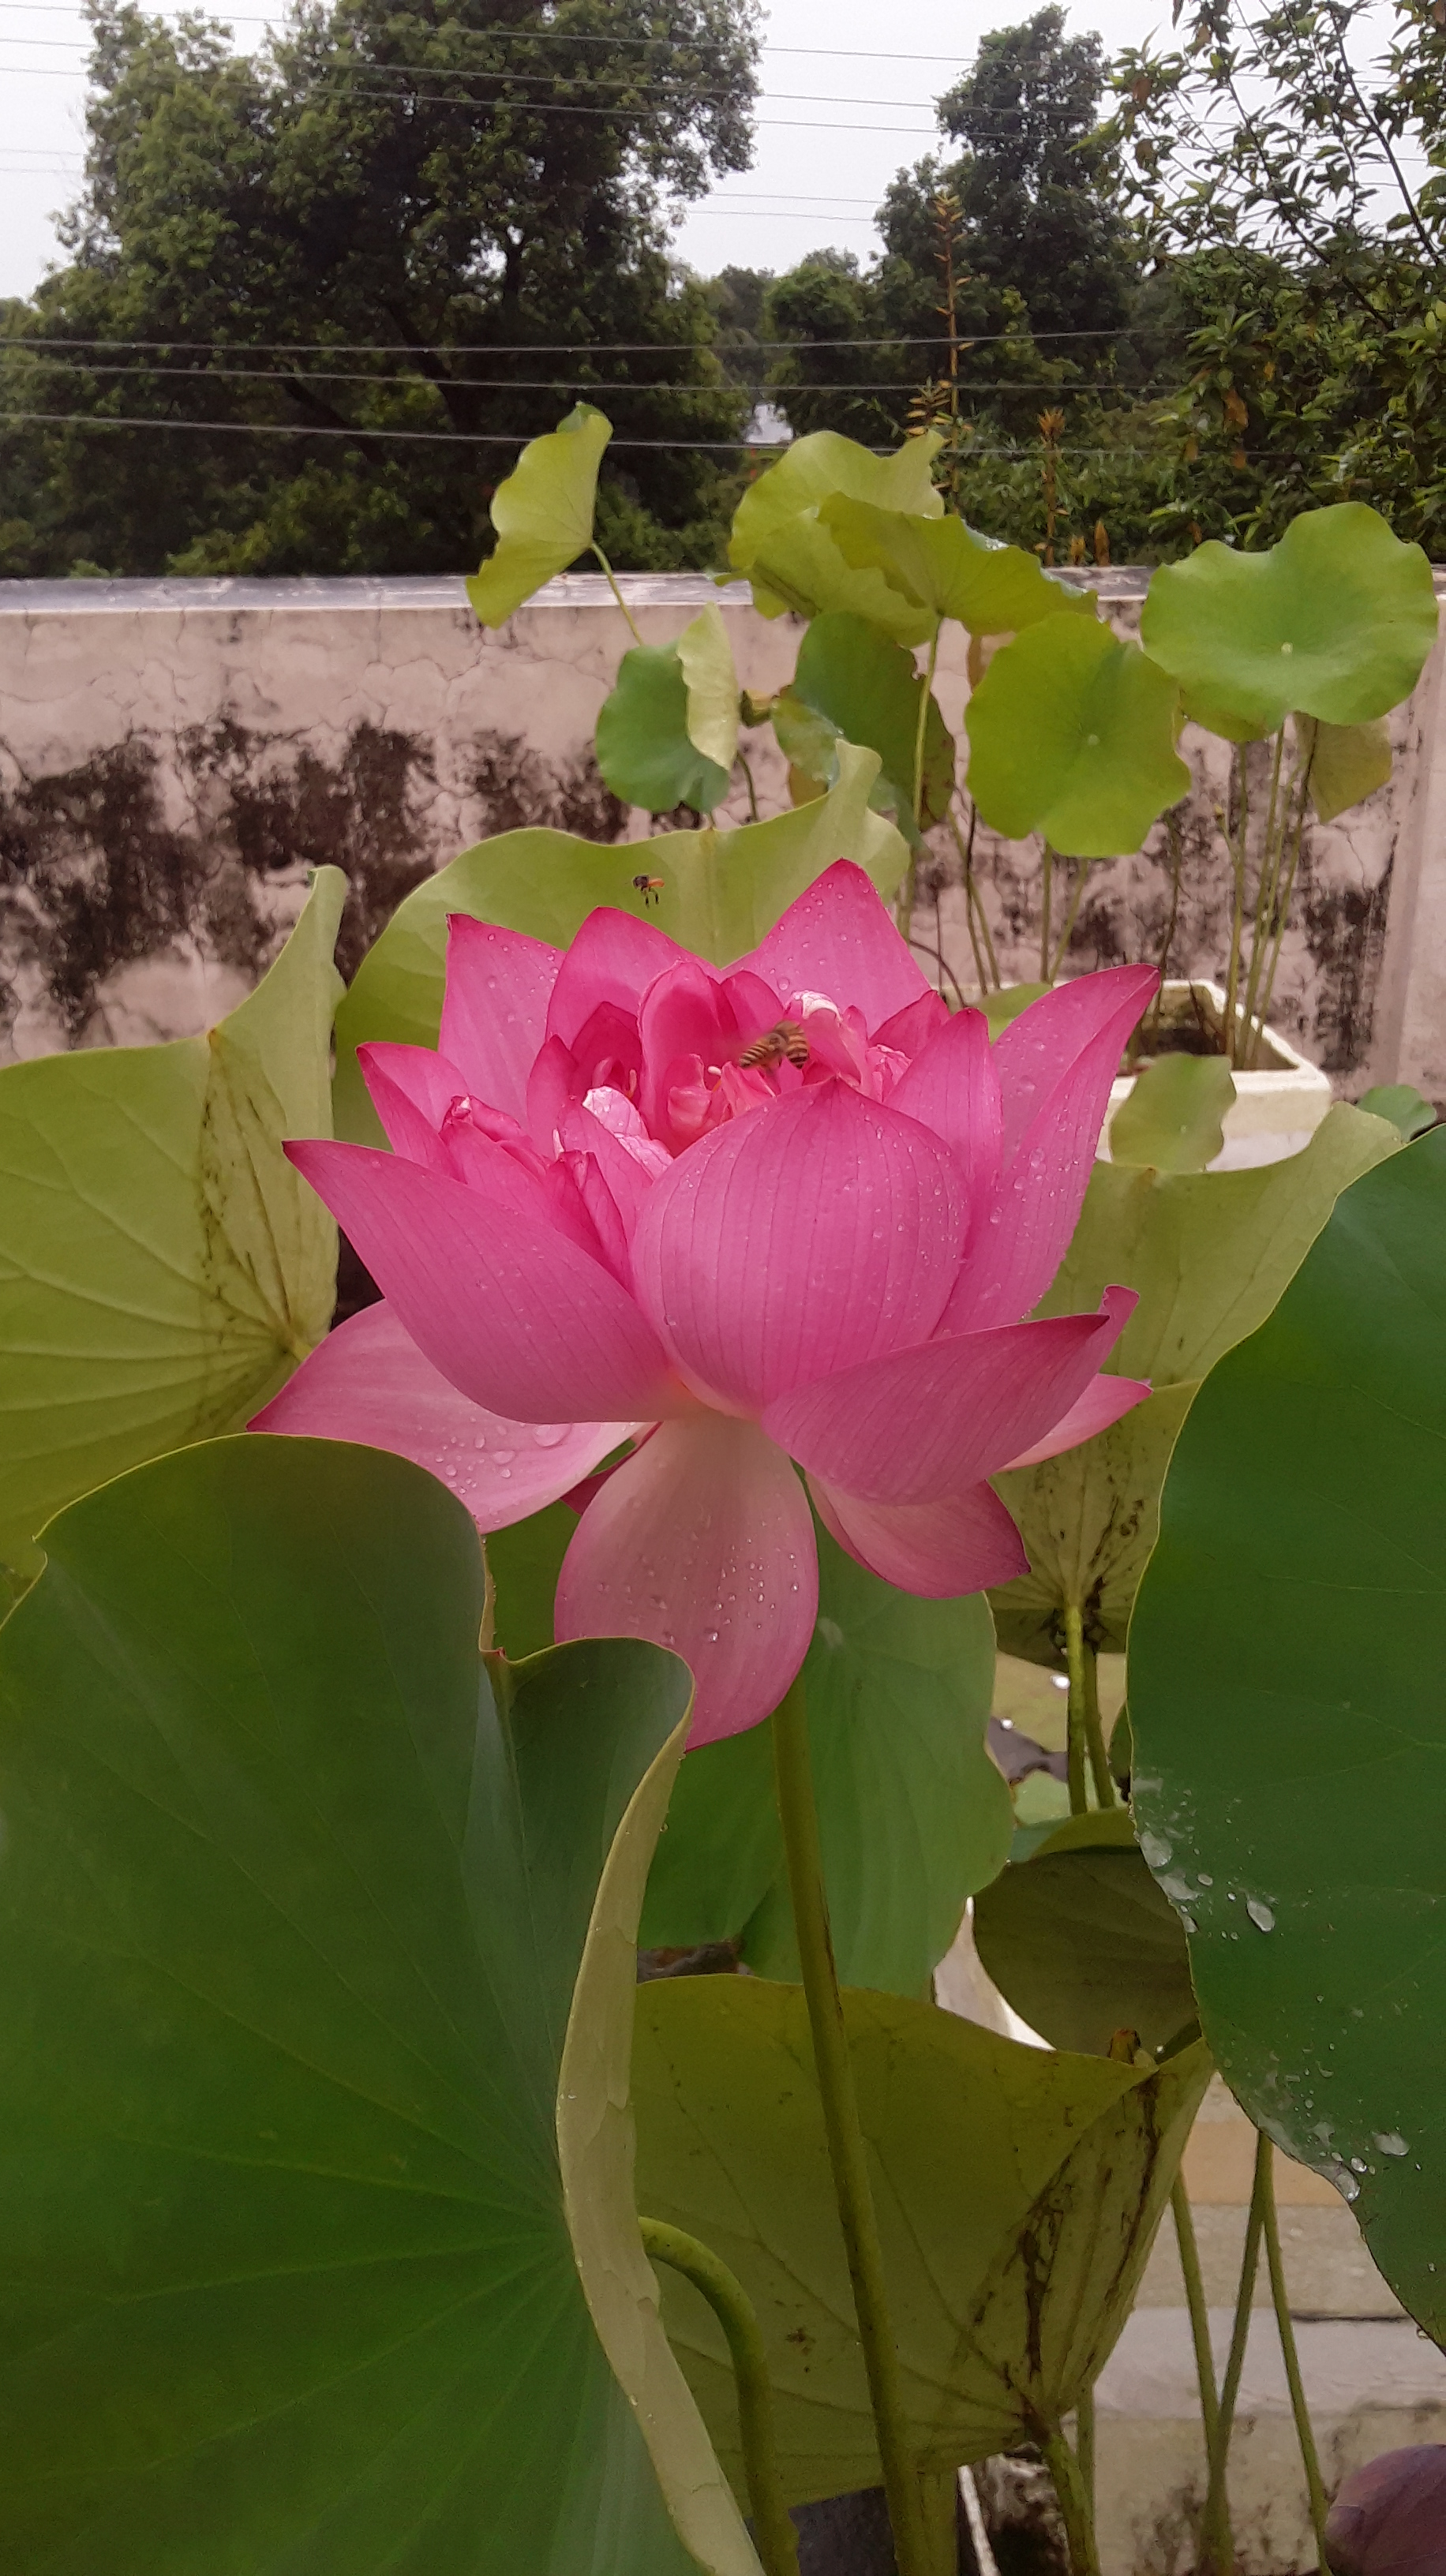 How one man in india is bringing the beauty of the lotus flower to how one man in india is bringing the beauty of the lotus flower to home gardens michael perry mr plant geek izmirmasajfo